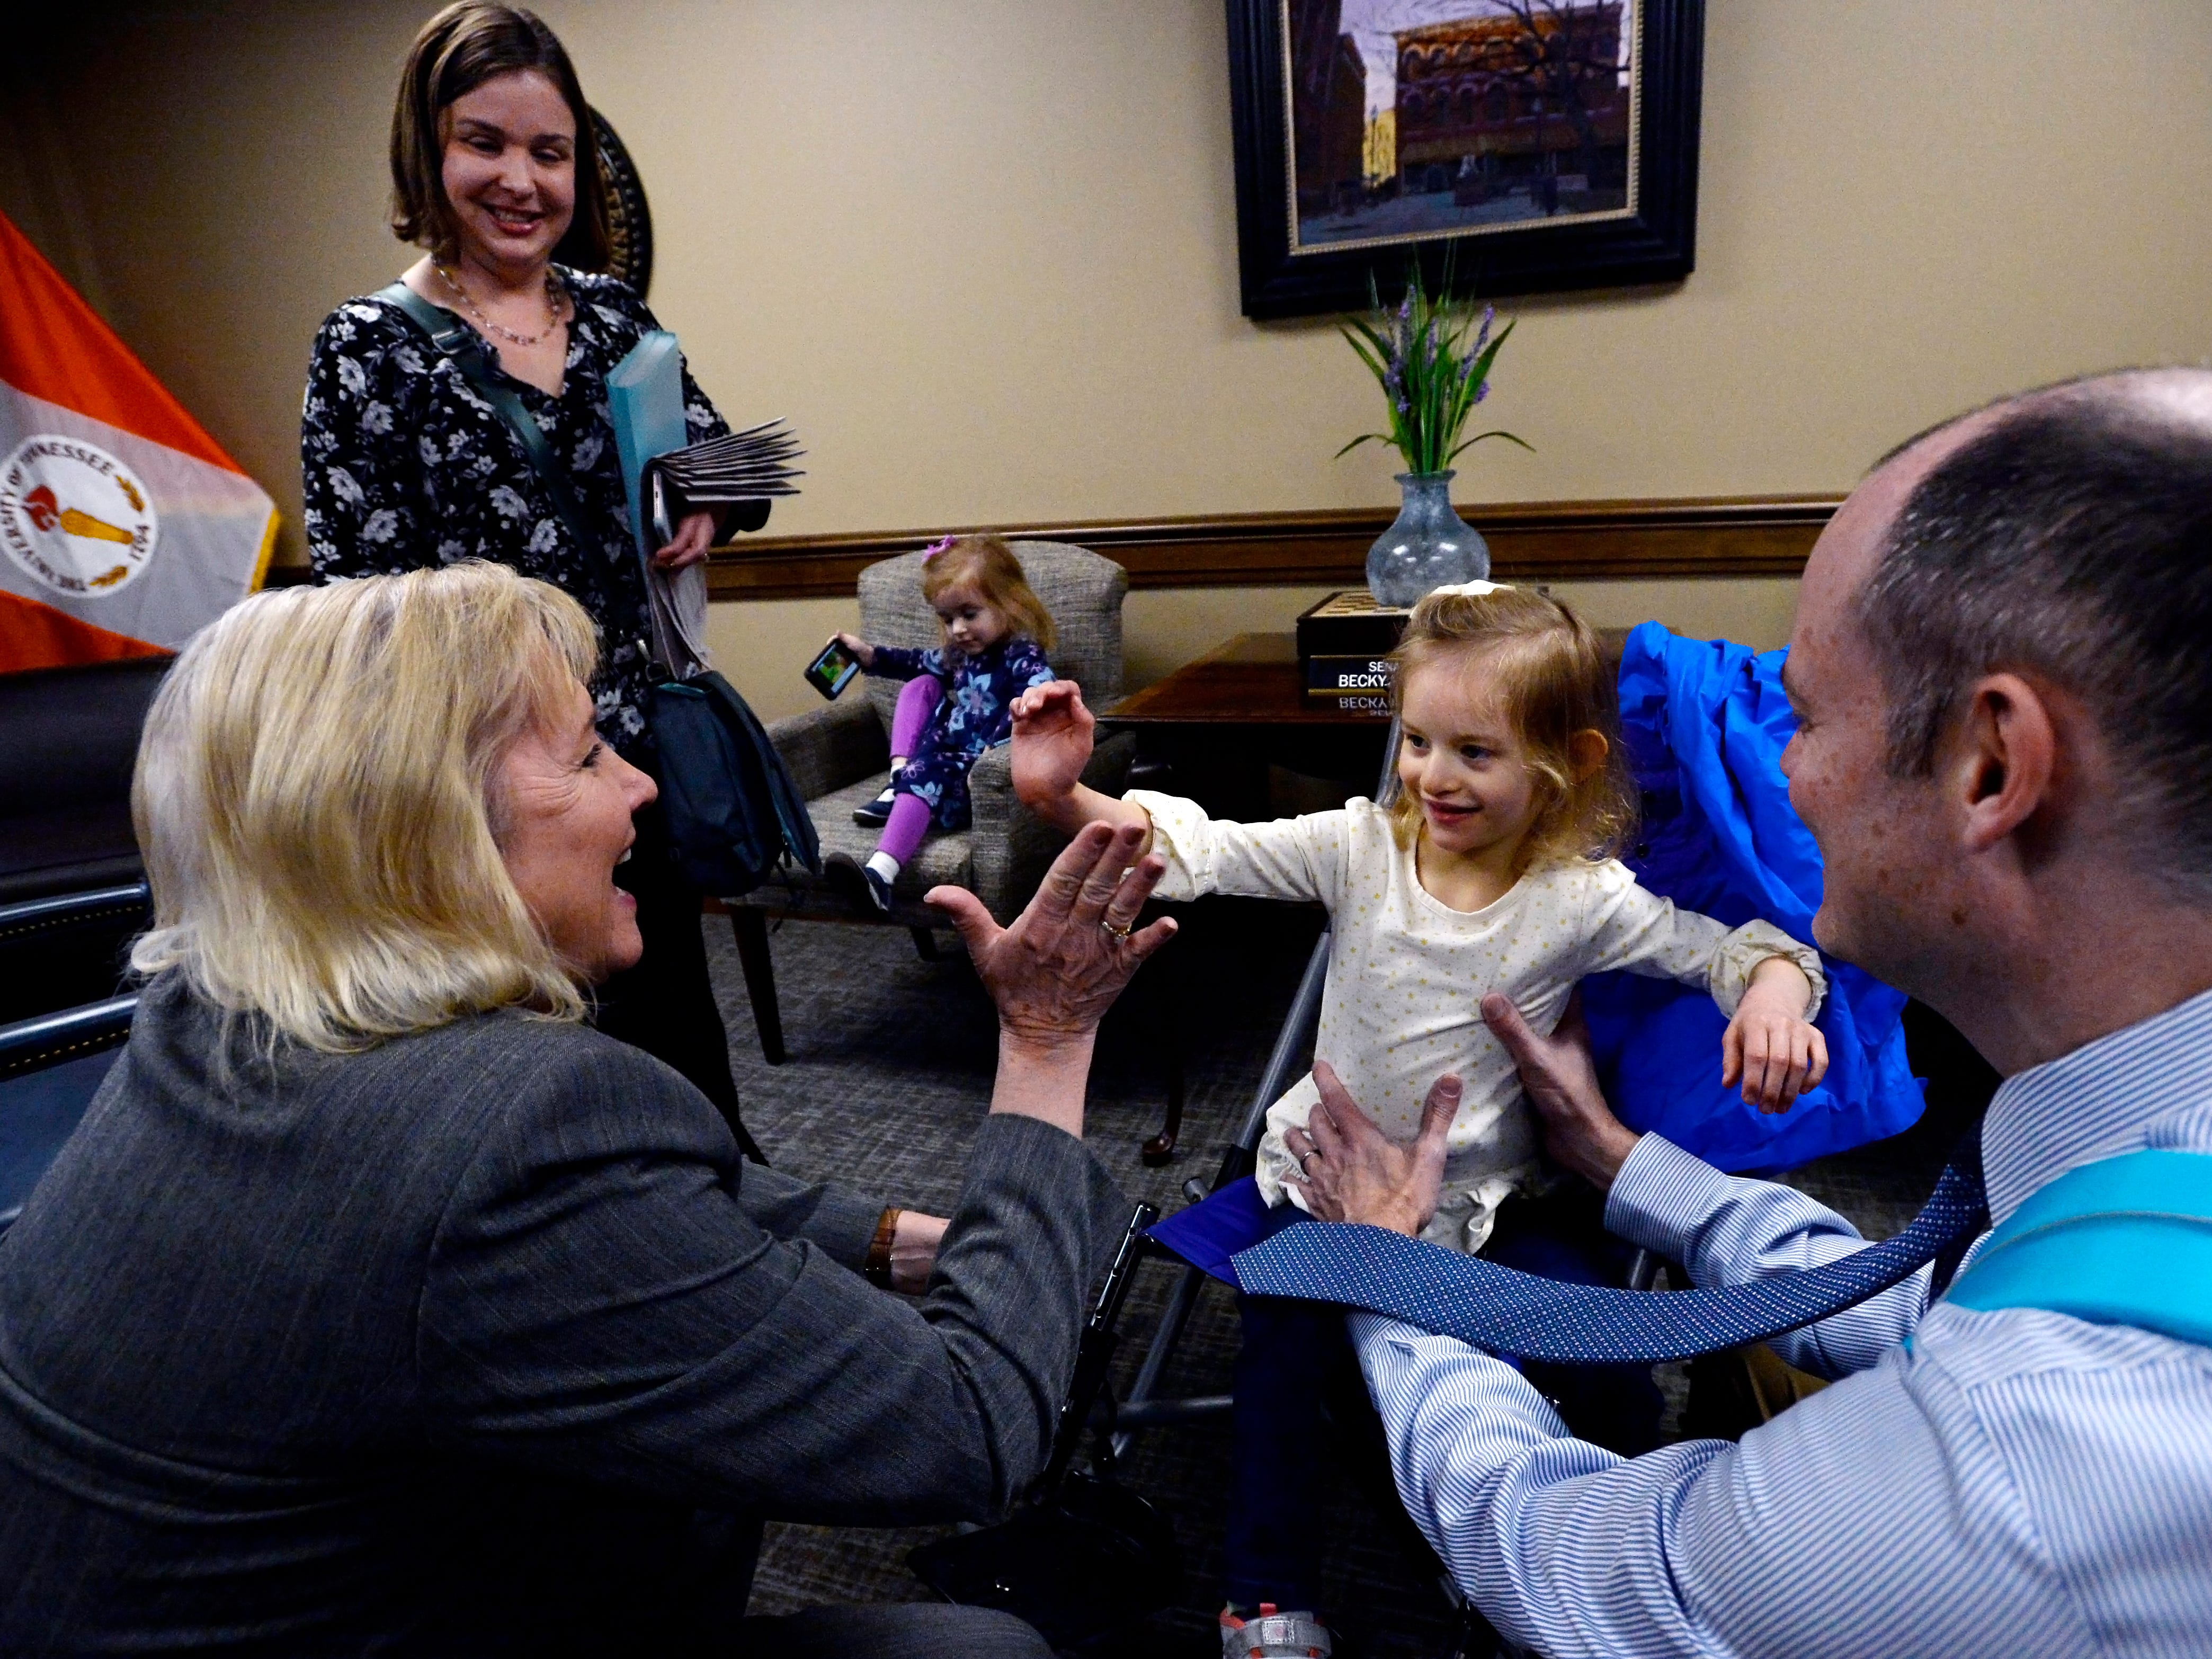 Claire Fox, 4, high-fives state Sen. Becky Duncan Massey, R-Knoxville, before her parents, Jessica, left, and Sean Fox, talk with the lawmaker during Disability Day on the Hill on Tuesday, Feb. 12, 2019, in Nashville.